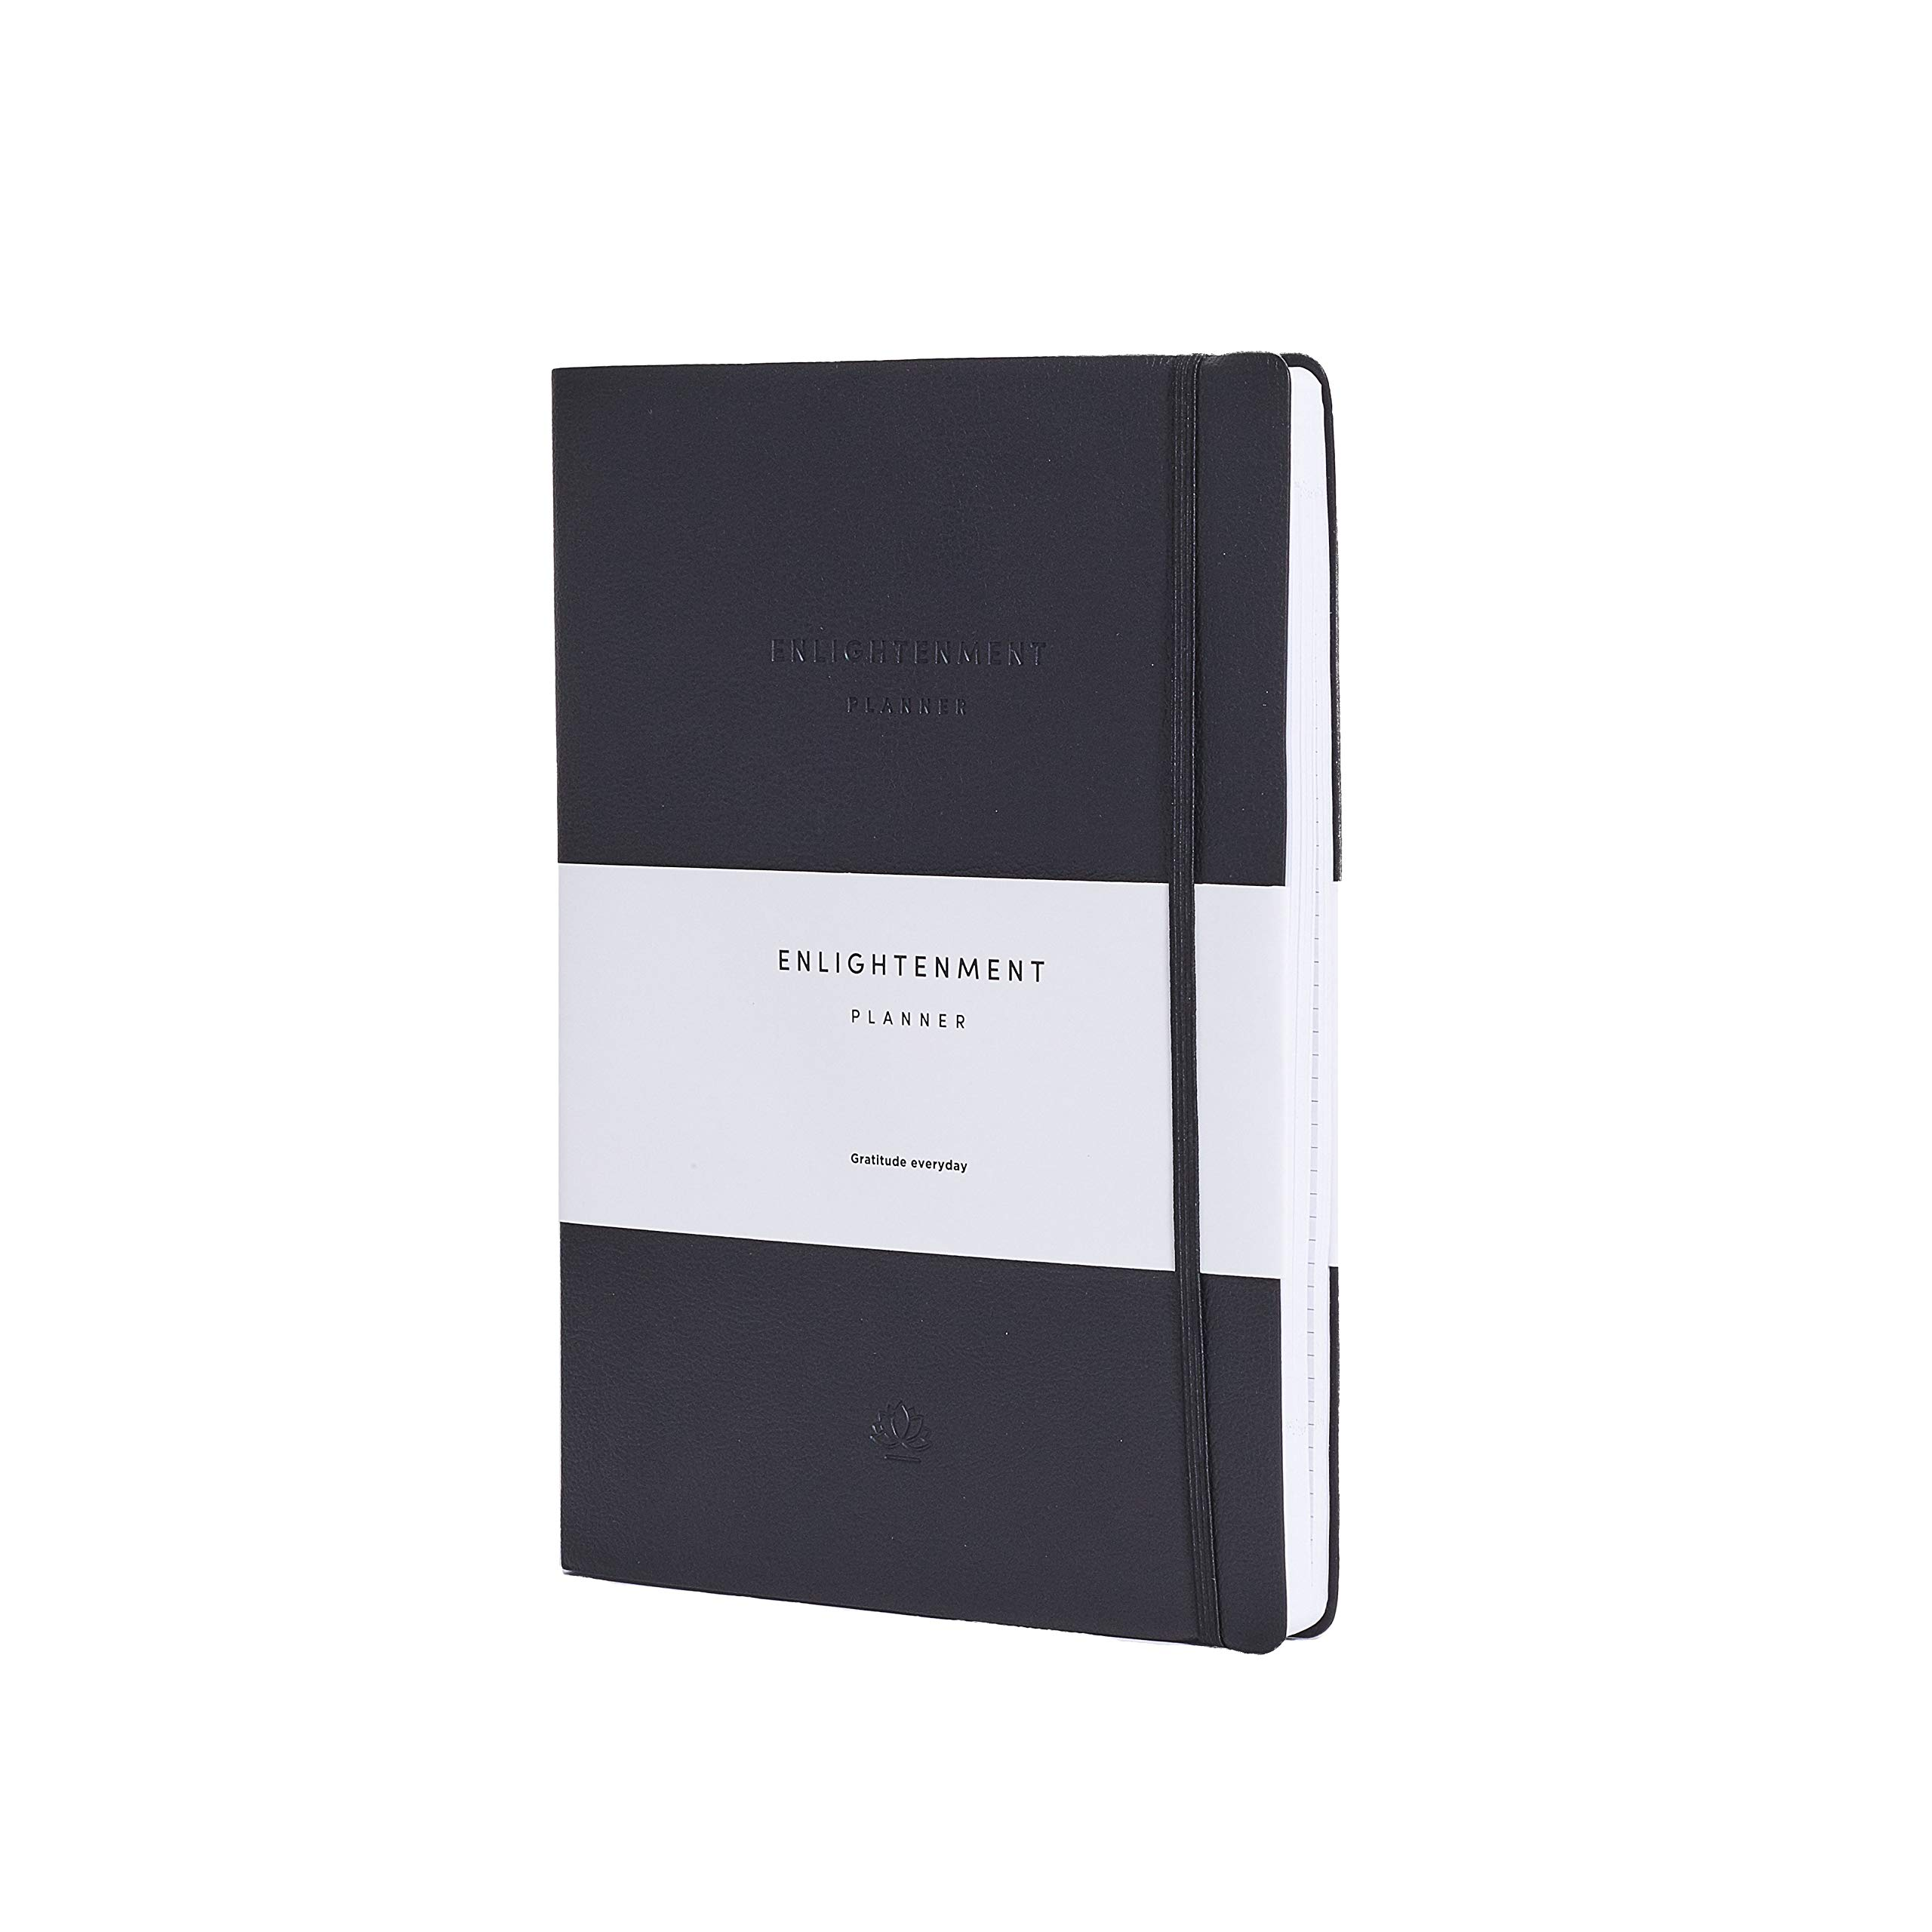 Enlightenment Planner   Dated 2020 Planner   Personal Life Journal   Meditation Organizer   Check List – 7 x 10-inch PU Leather Cover – Flexible Binder – Self-Reflection Journal - Black